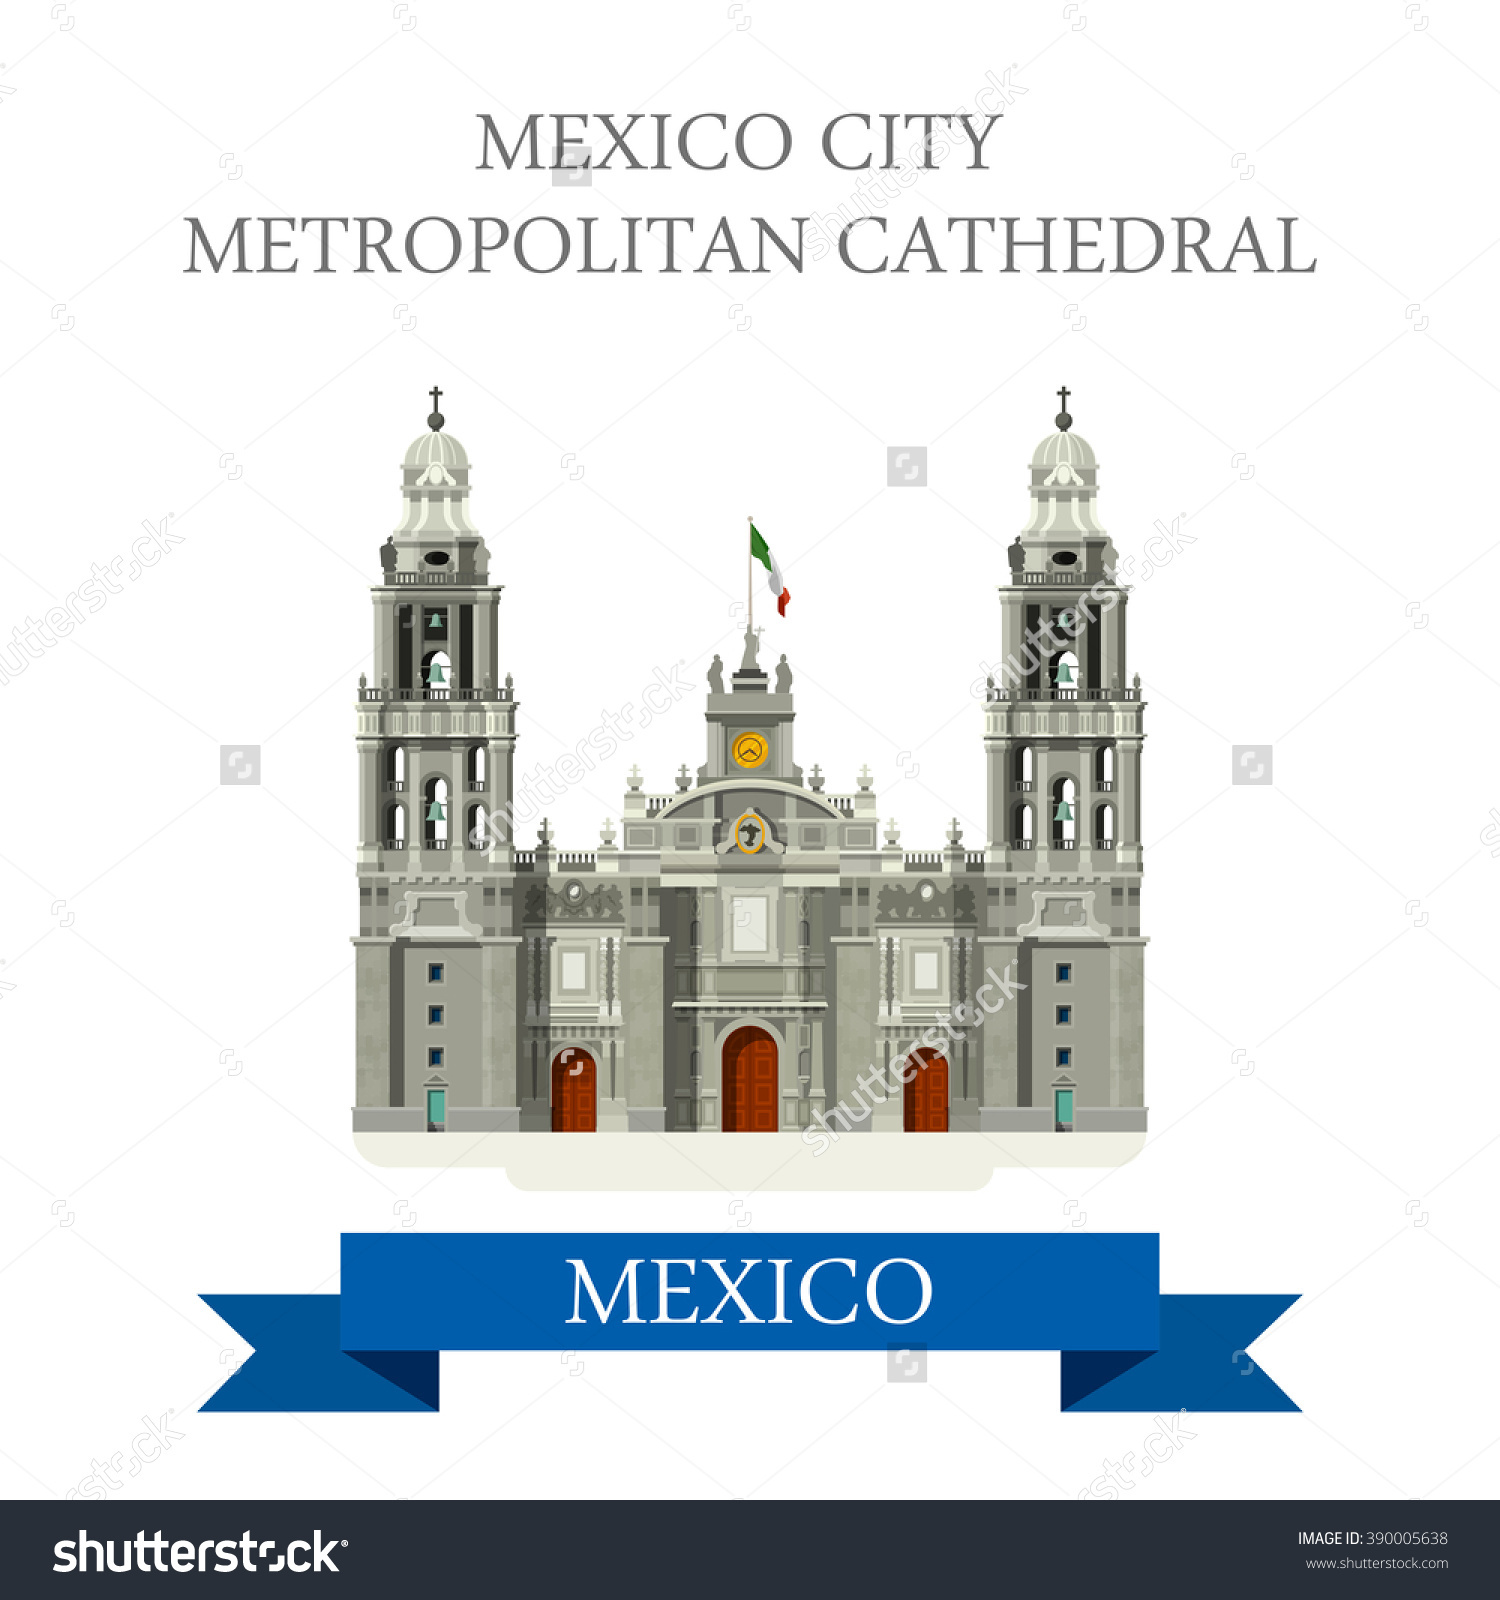 Mexico City Metropolitan Cathedral Flat Cartoon Stock Vector.